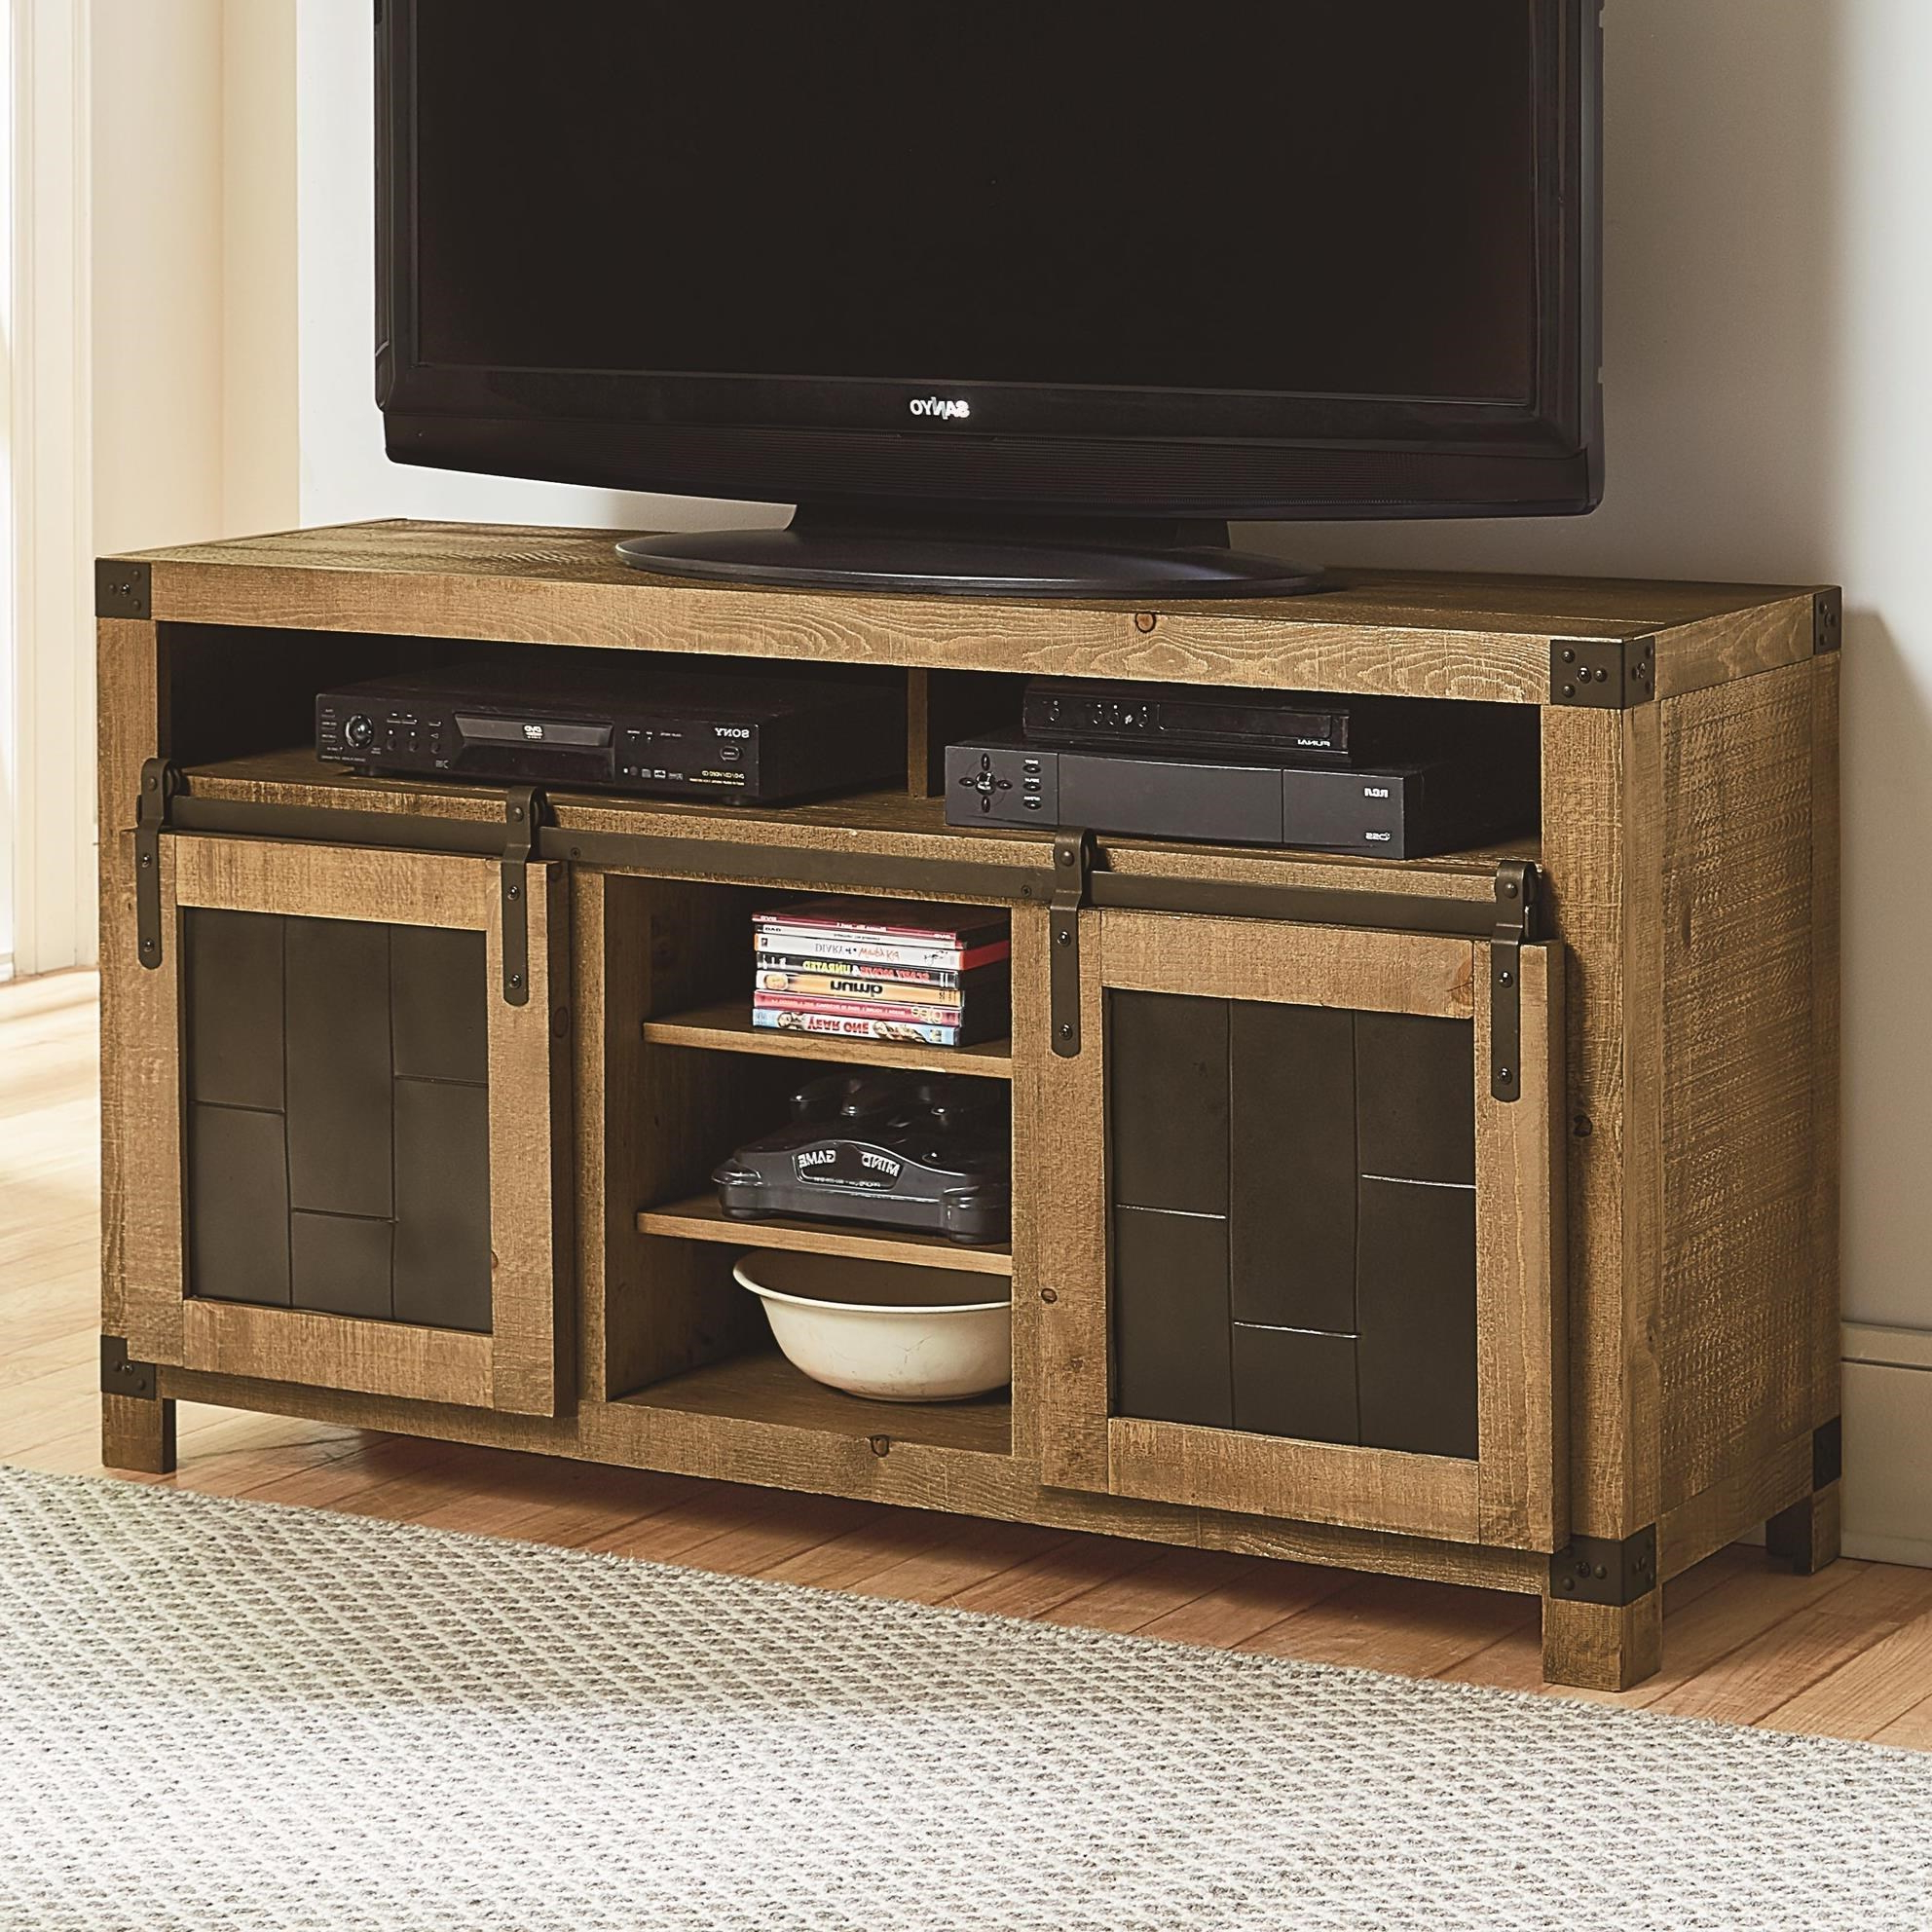 Progressive Furniture Mojo Rustic 54 Inch Console With Regarding Tv Stands With Sliding Barn Door Console In Rustic Oak (View 2 of 20)